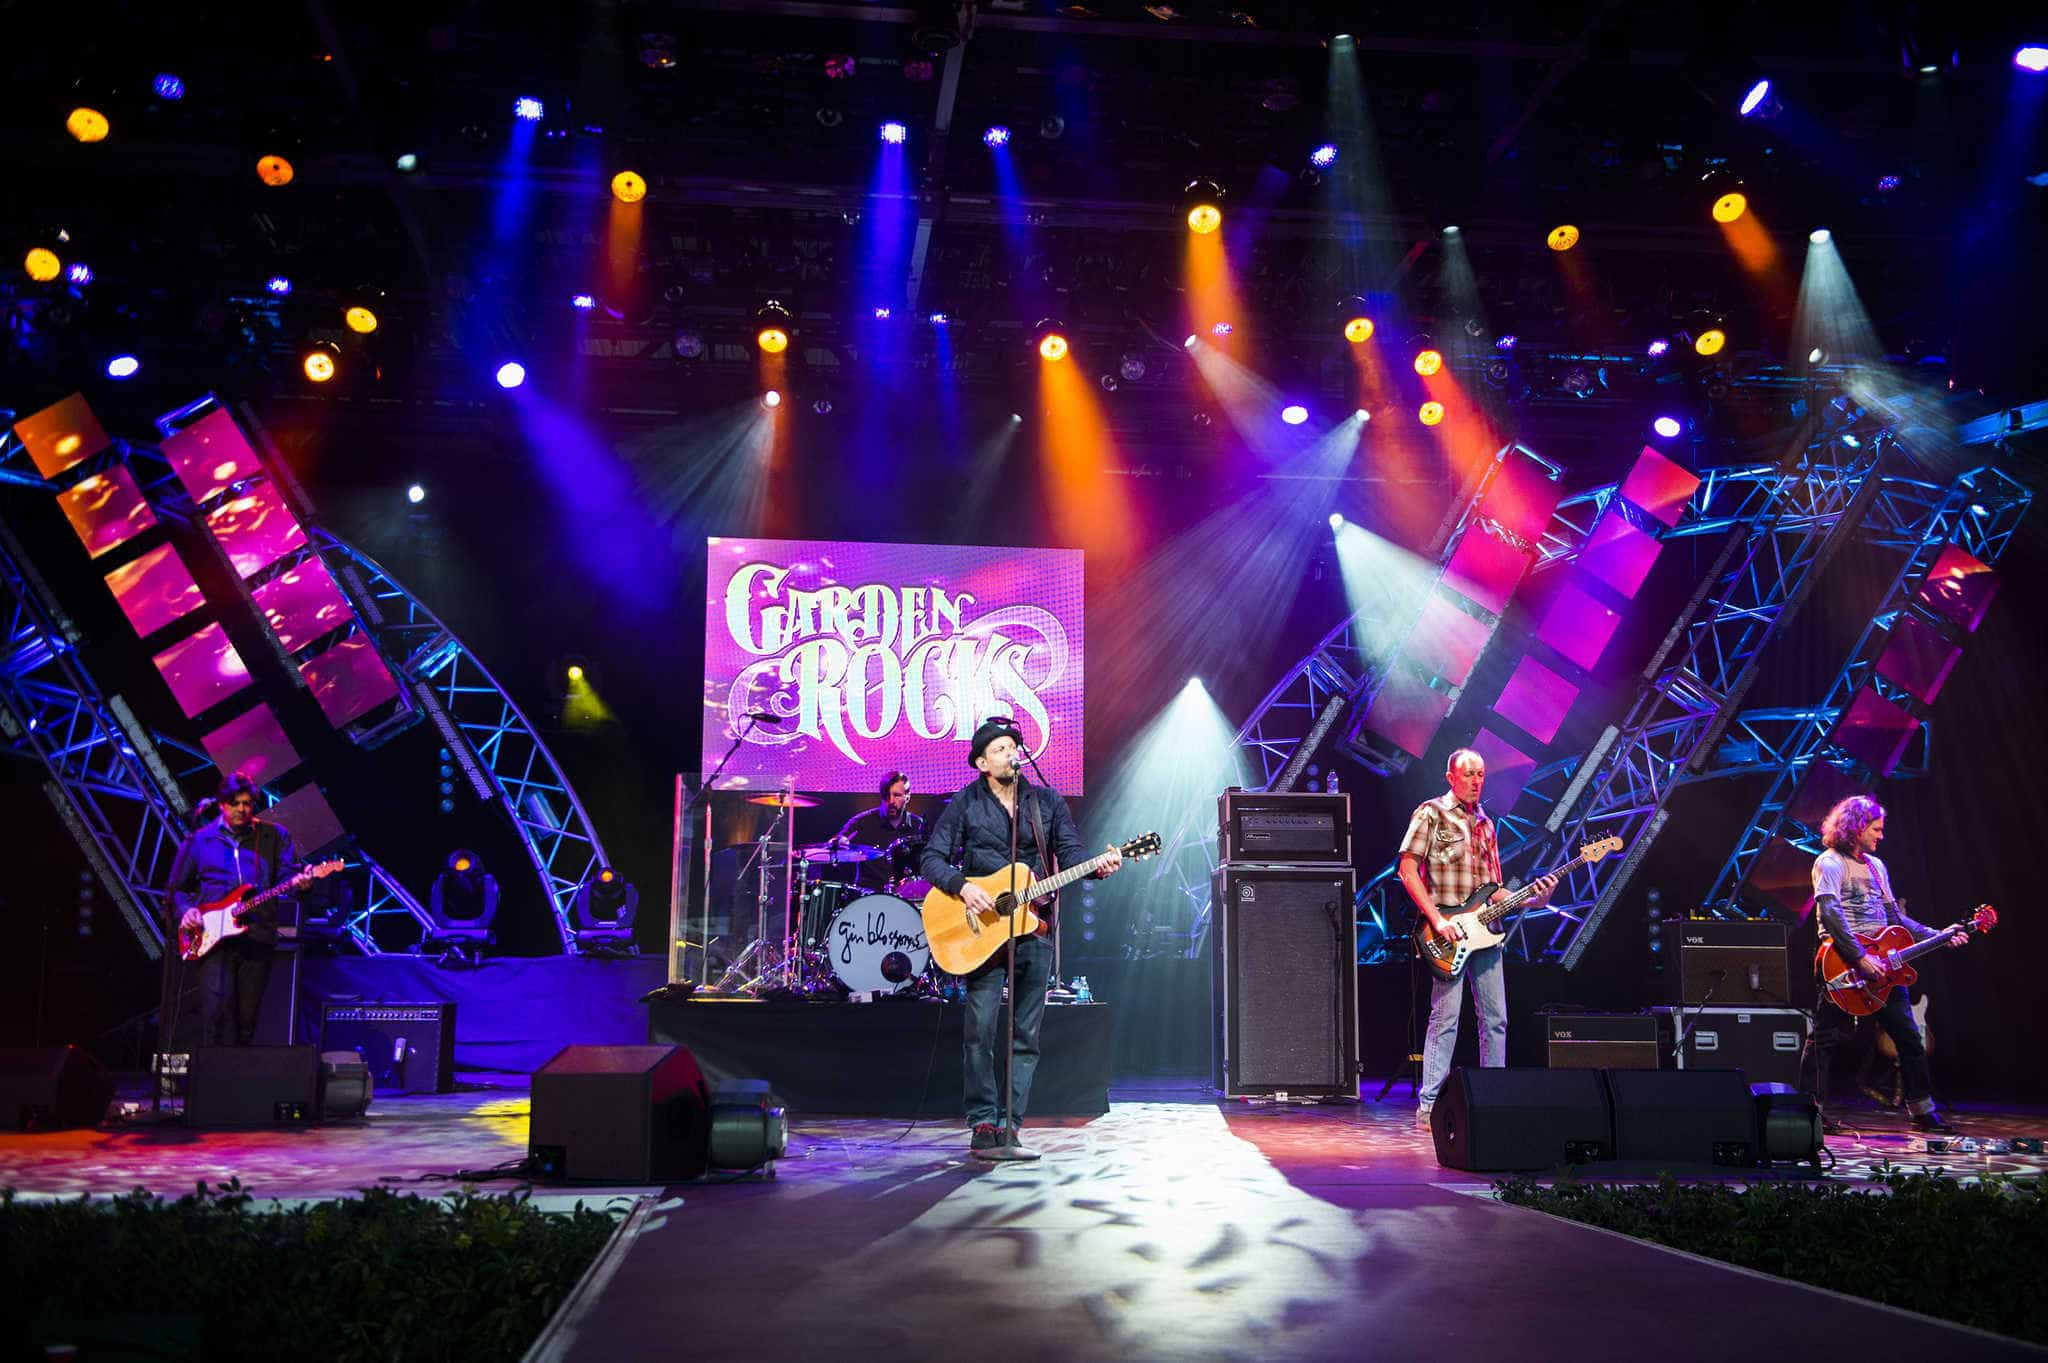 Epcot International Flower & Garden Festival 2019 na Disney Orlando: Garden Rocks Concert Series